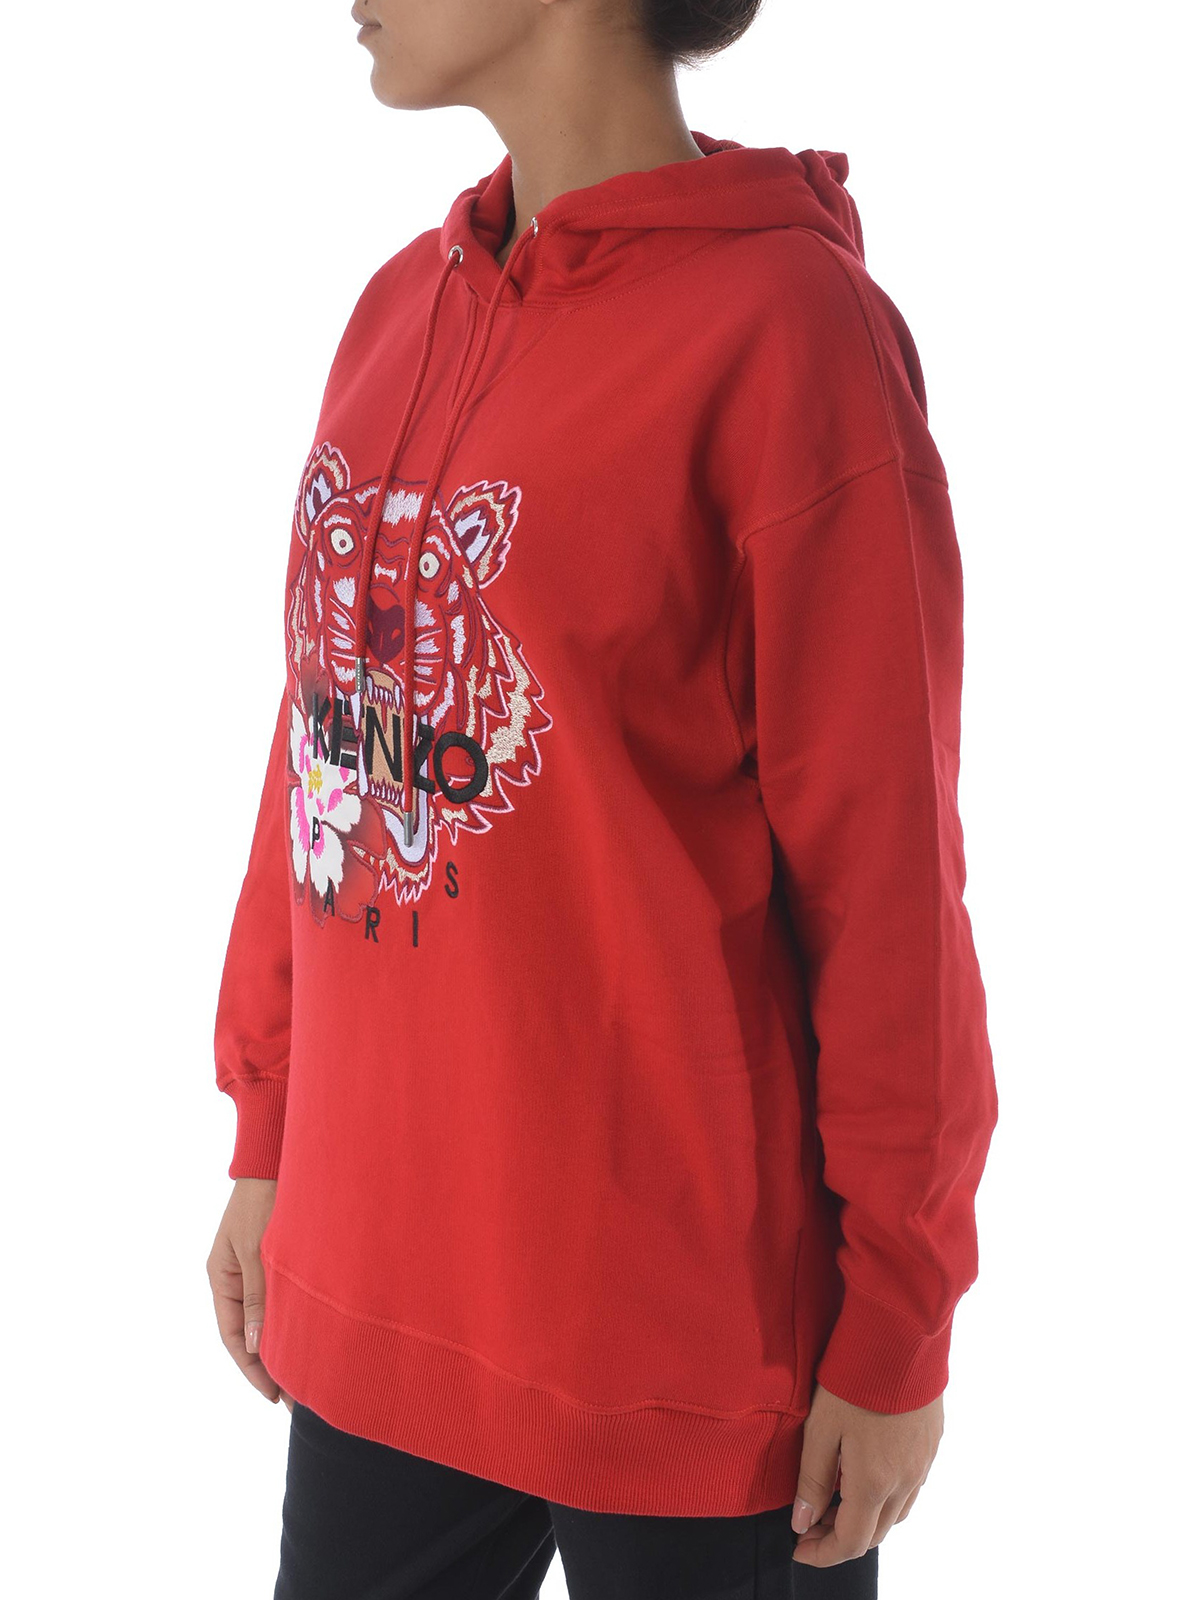 0665cdca86 iKRIX KENZO: Sweatshirts & Sweaters - Red Tiger embroidery sweatshirt